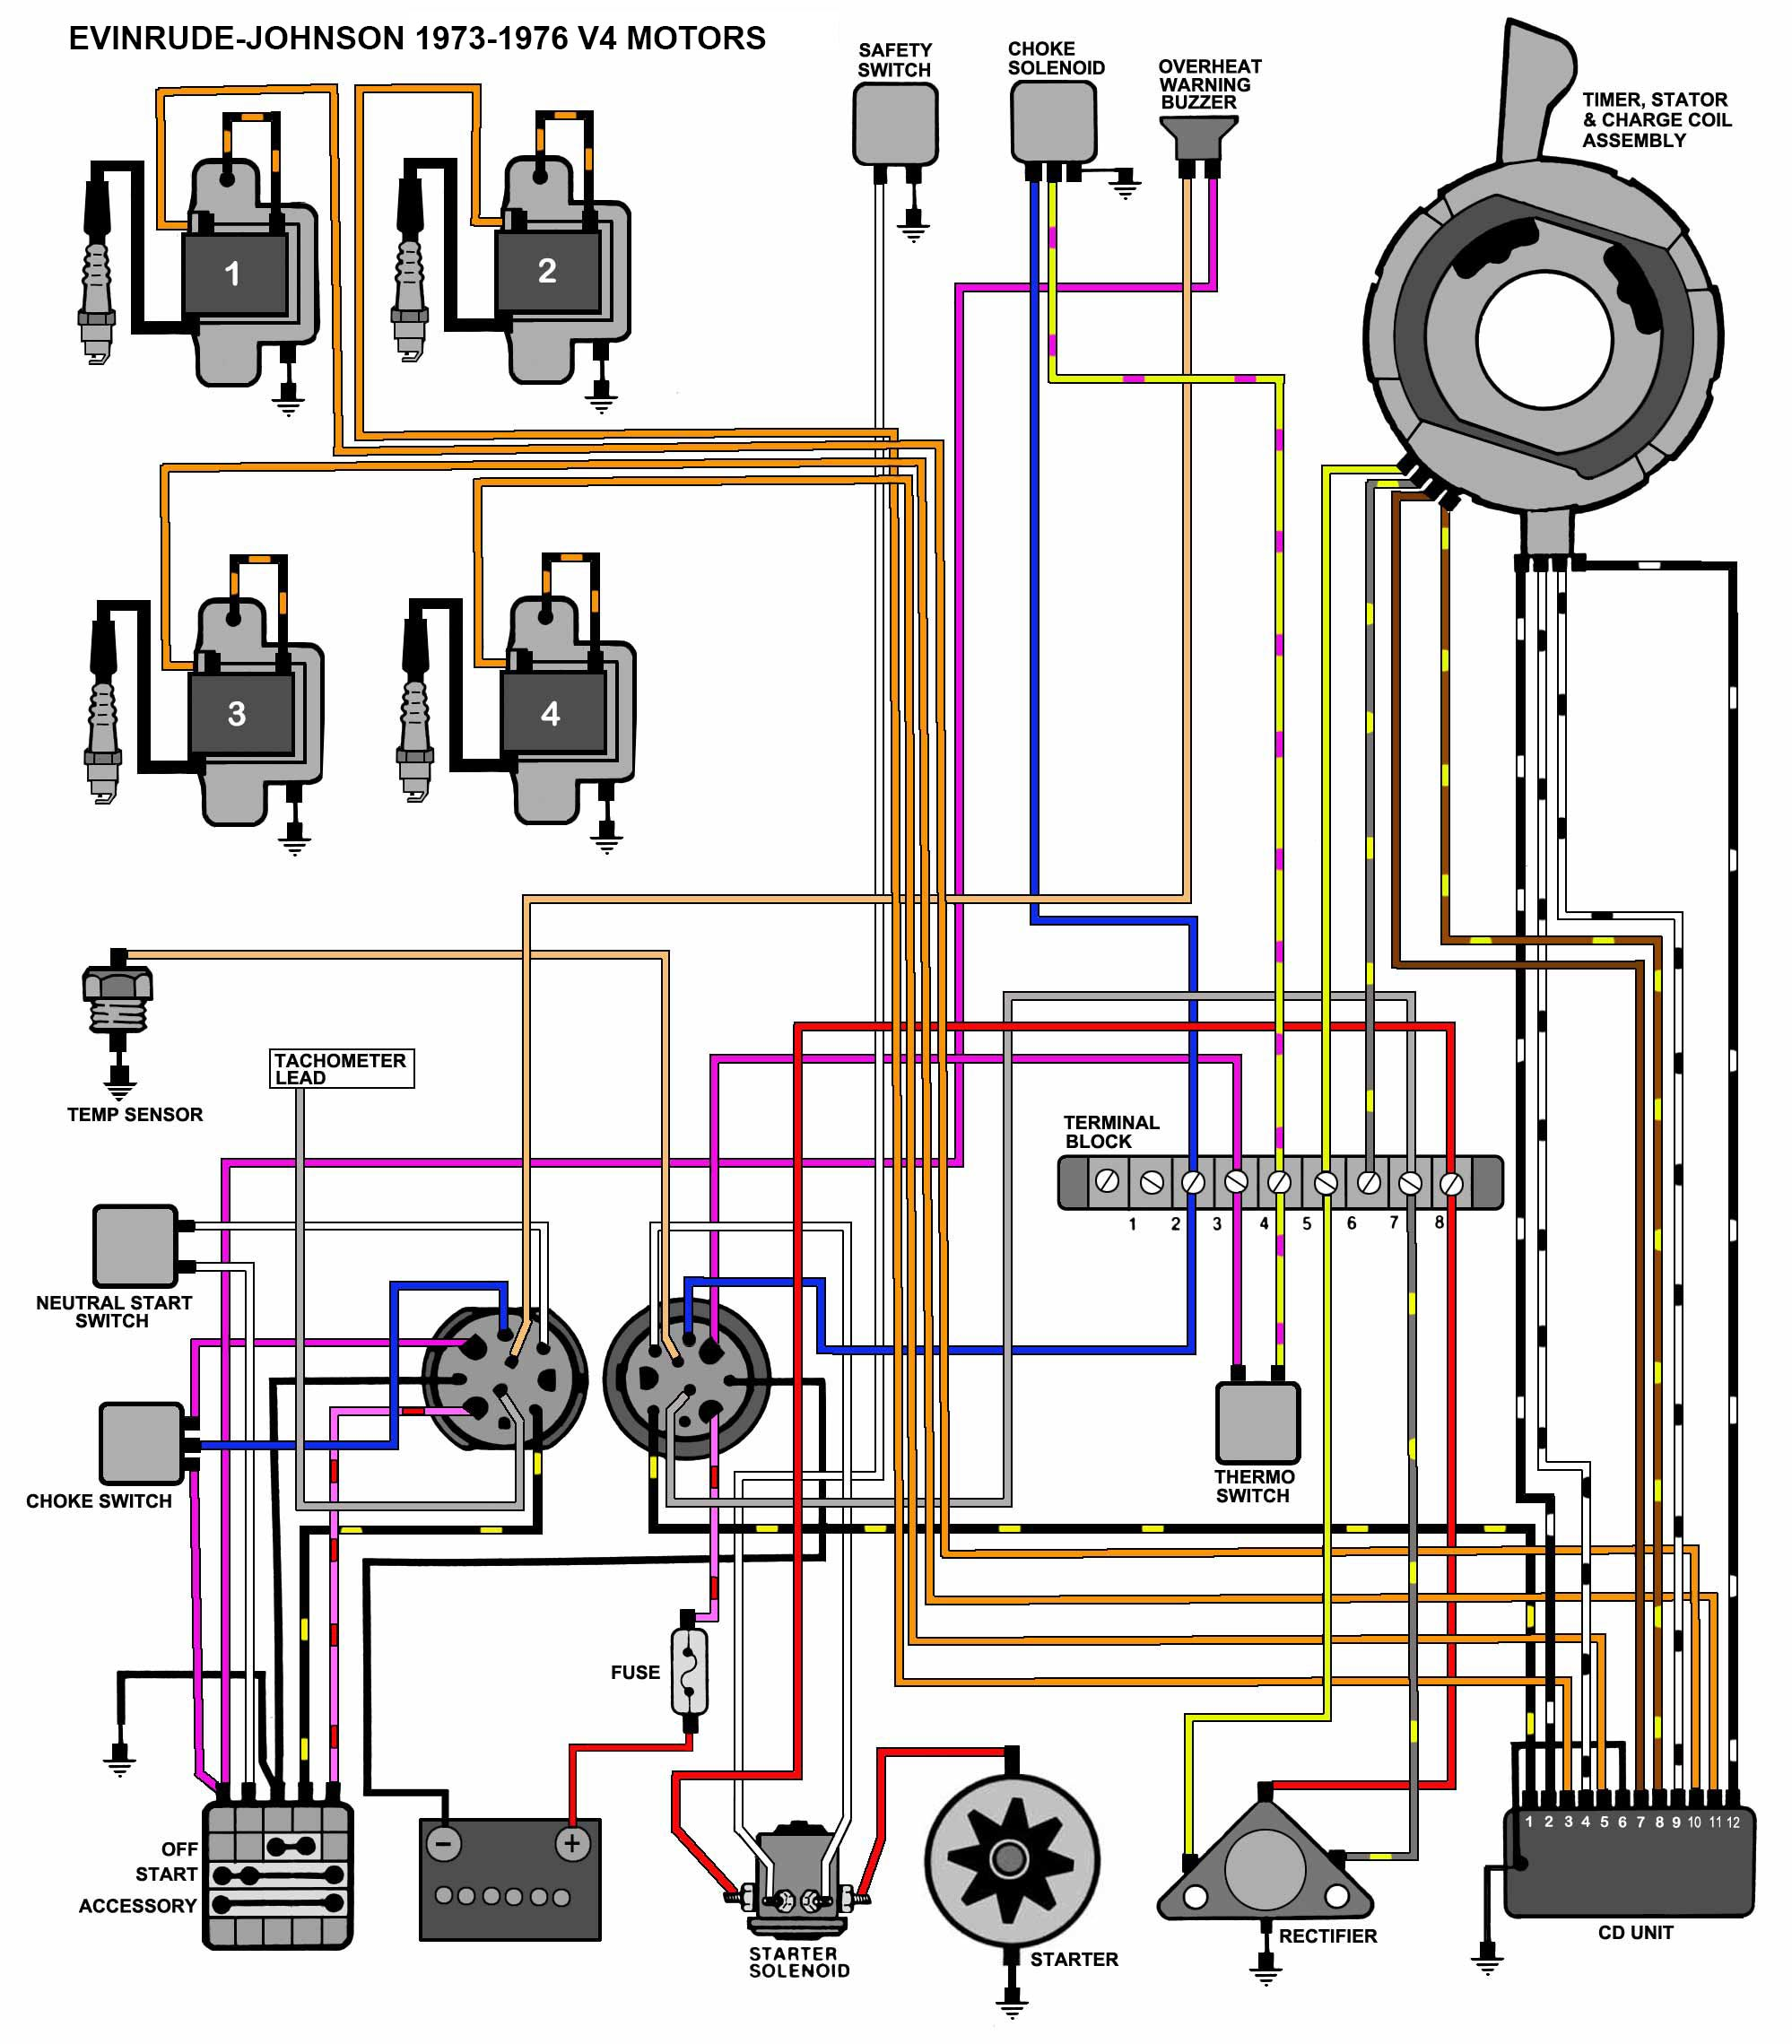 V4_1973 omc tech johnson wiring questions Yamaha Outboard Wiring Diagram at creativeand.co